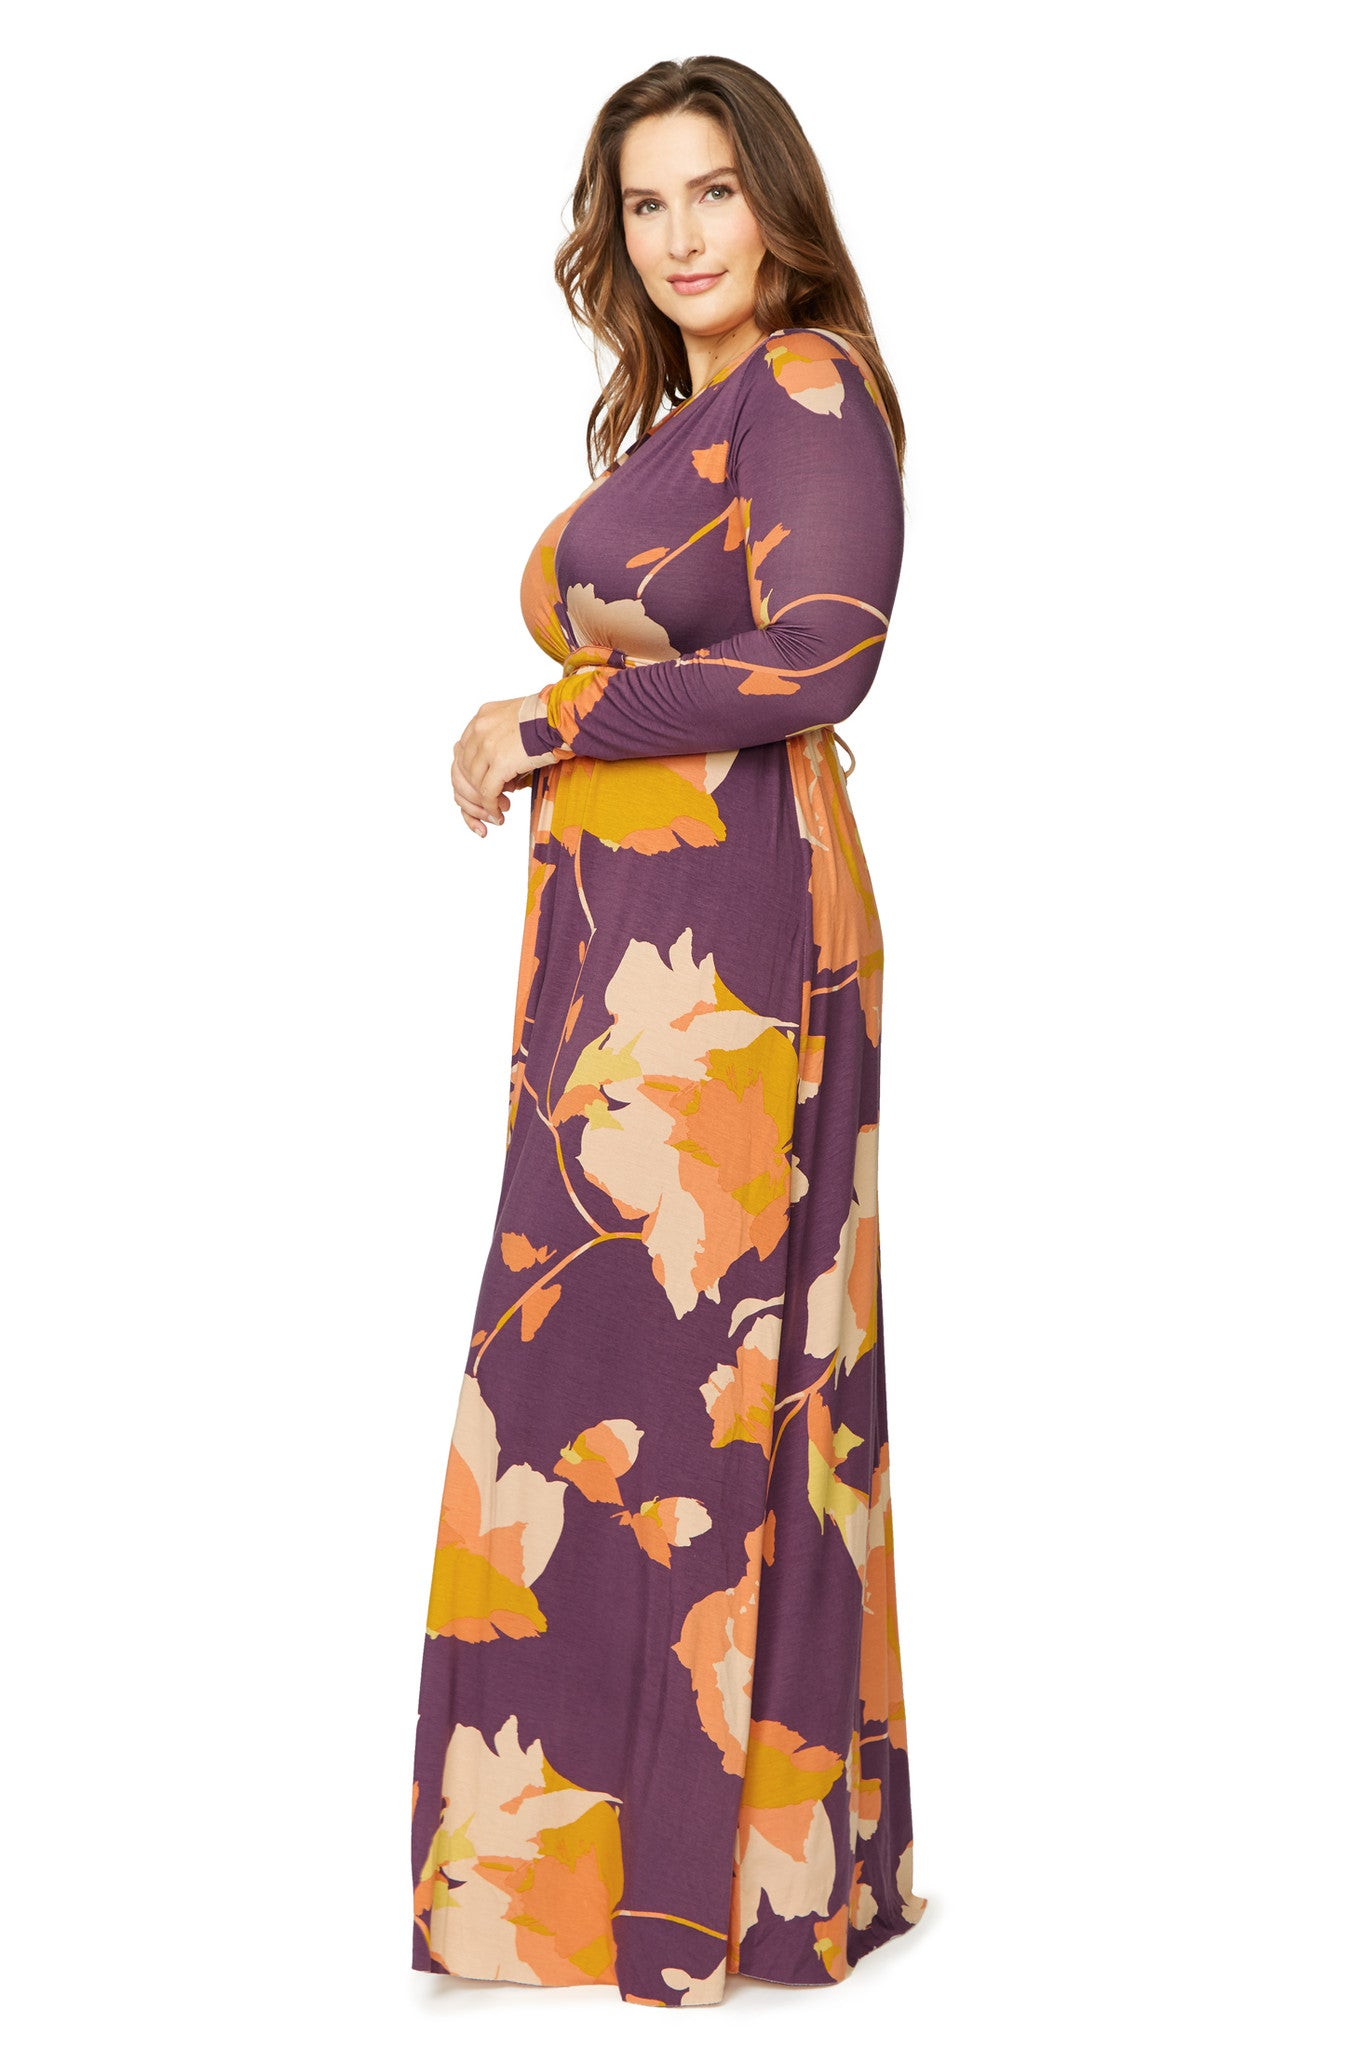 Long Sleeve Full Length Caftan WL Print - Desert Flower